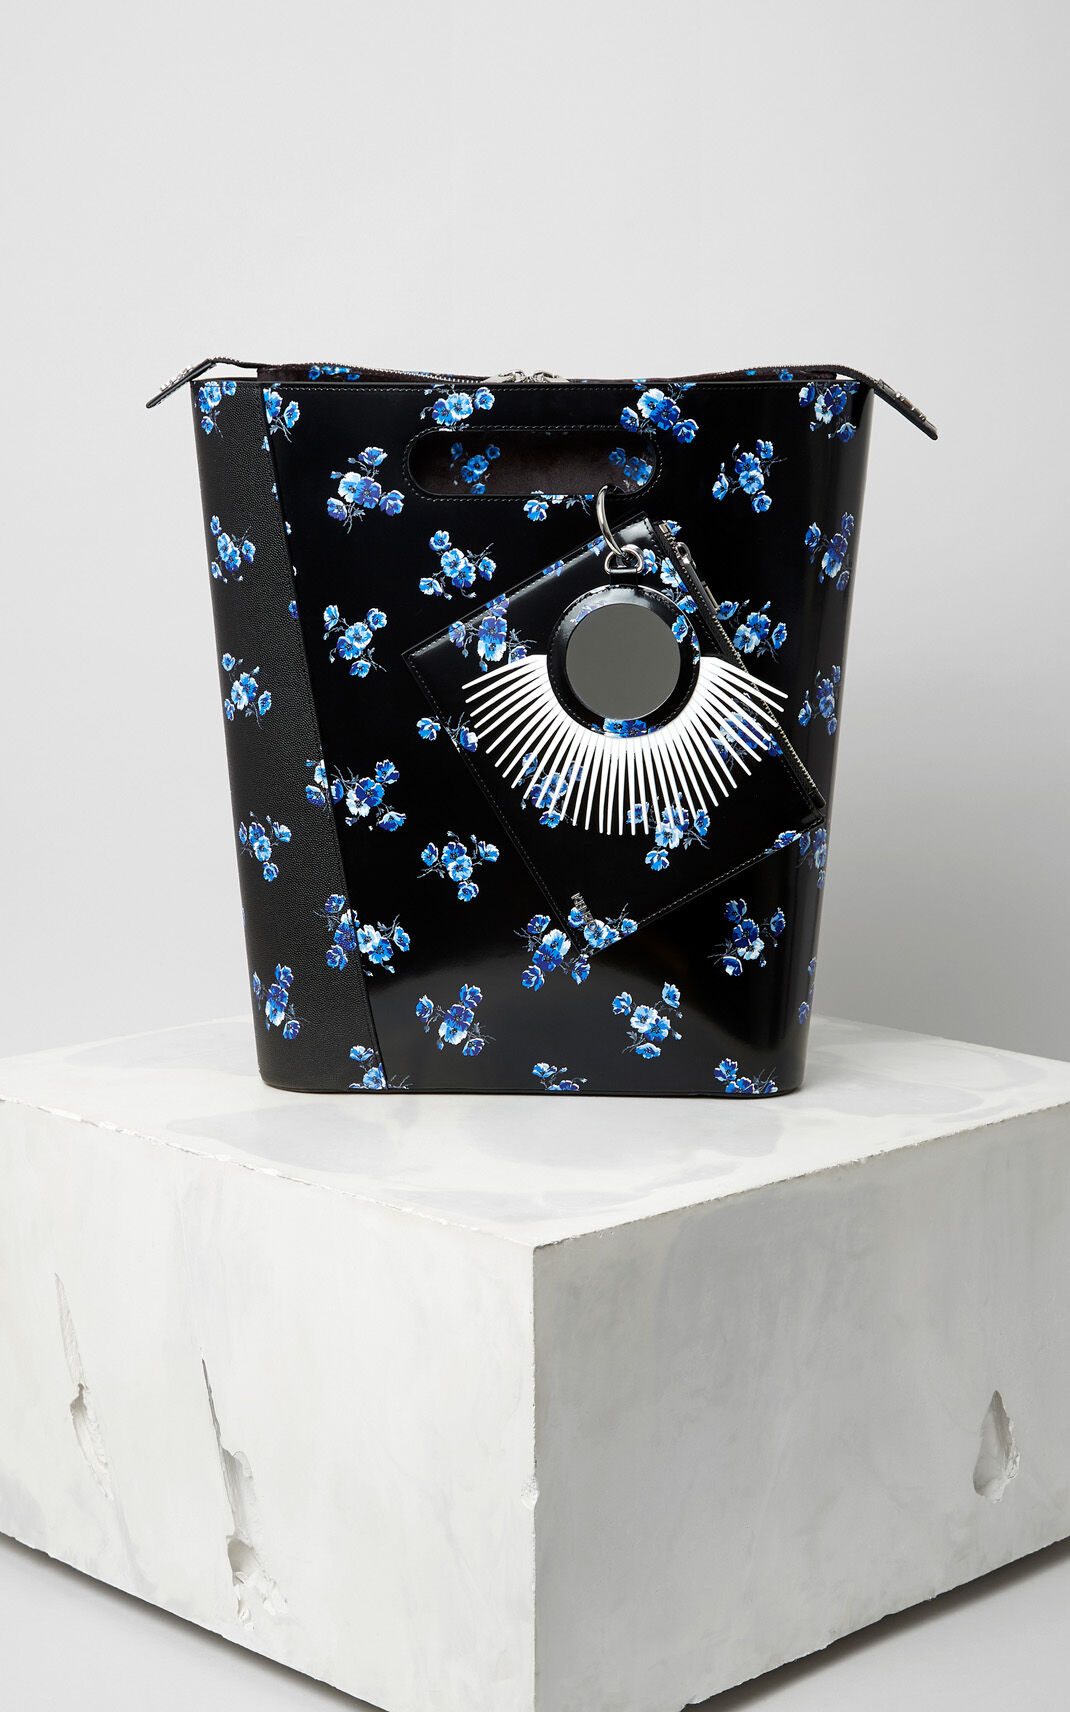 BLACK Large ''May flowers' Stiff Tote Bag for unisex KENZO